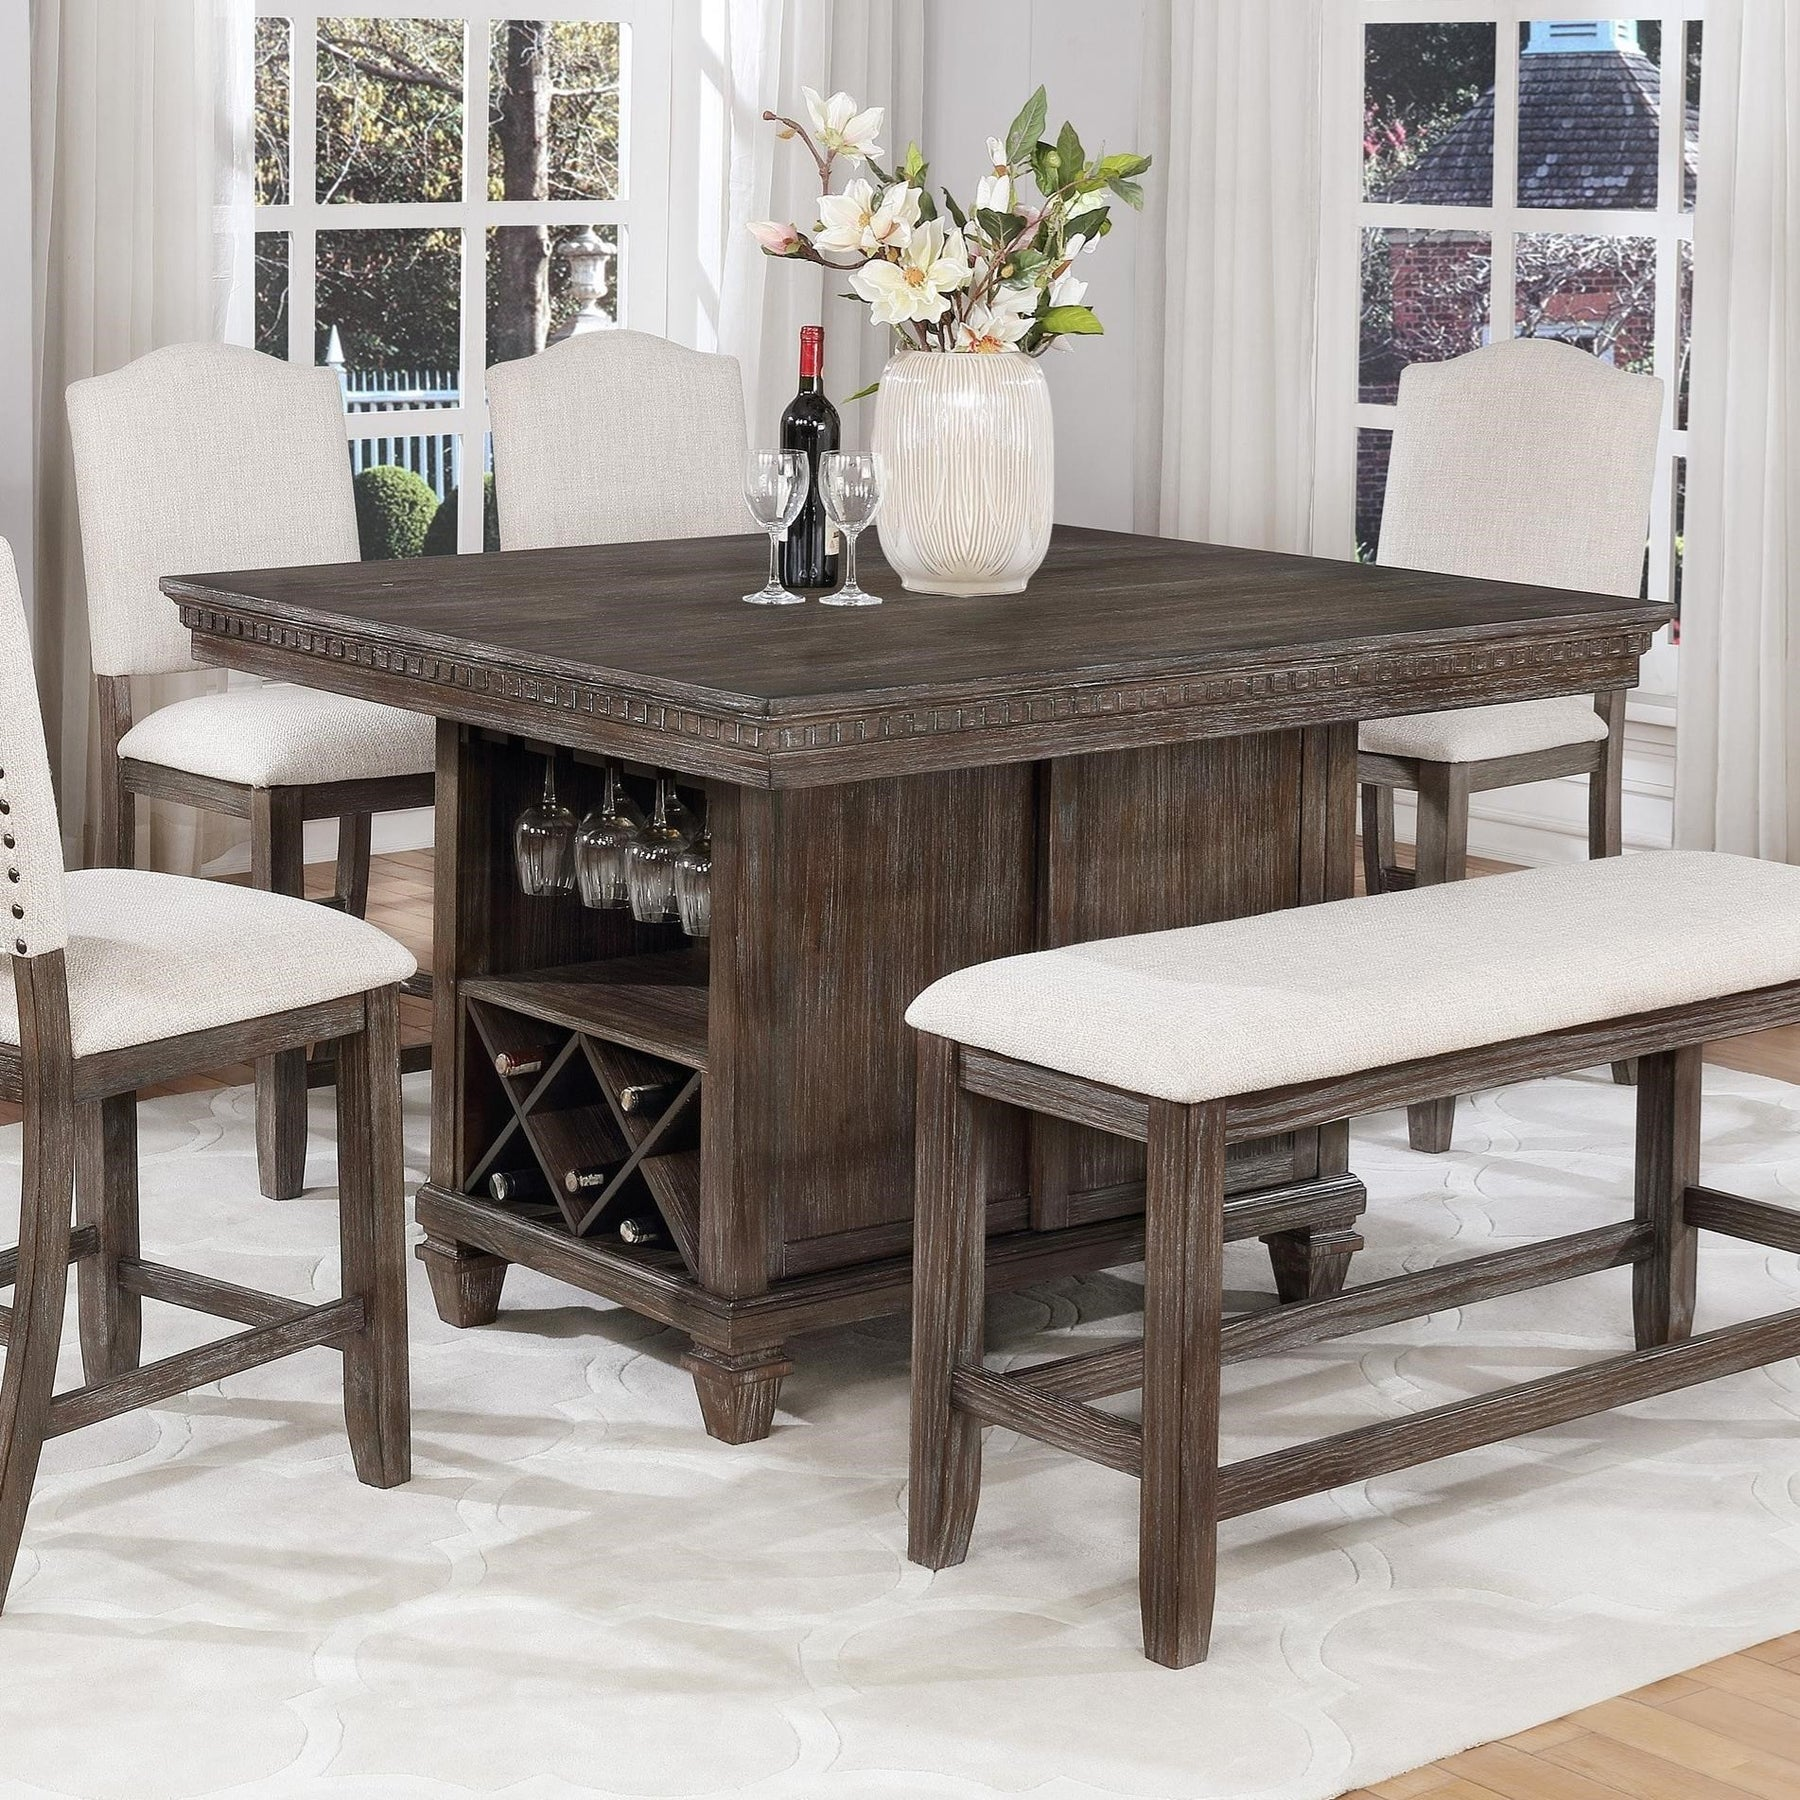 Marlene Counter Height Table W 4 Chairs Katy Furniture